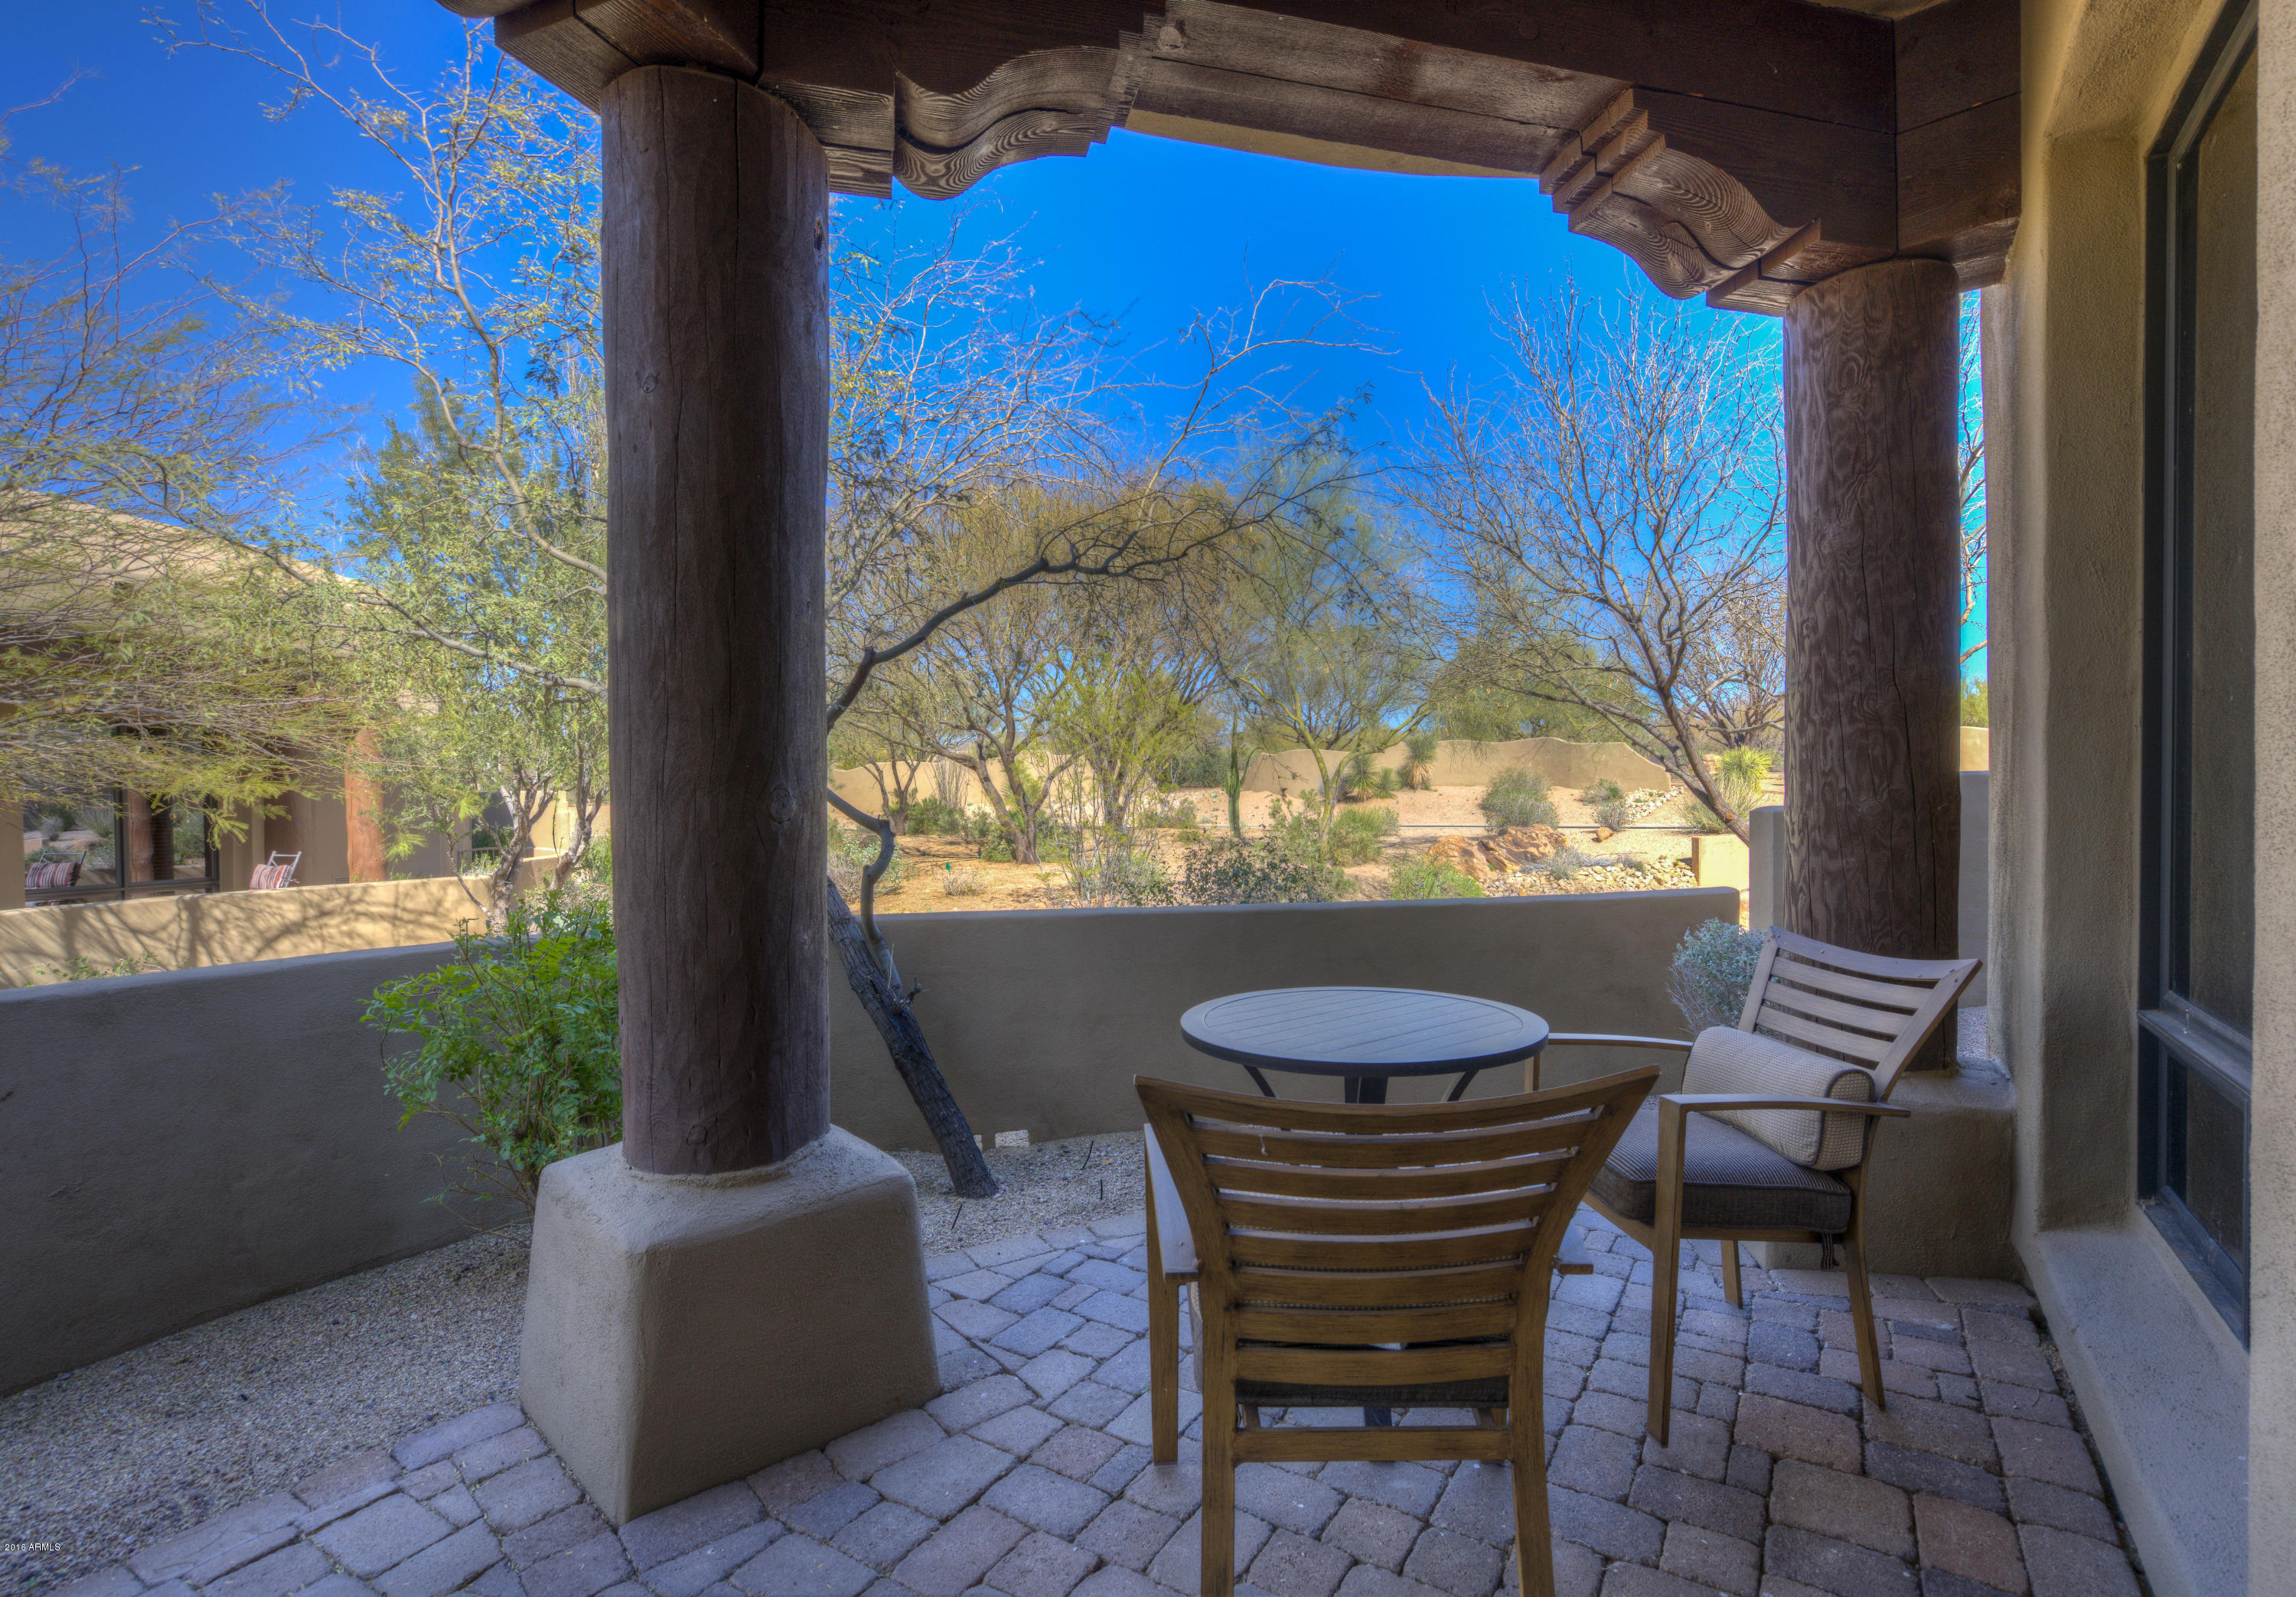 MLS 5934598 7373 E CLUBHOUSE Drive Unit 19, Scottsdale, AZ 85266 Scottsdale AZ The Boulders